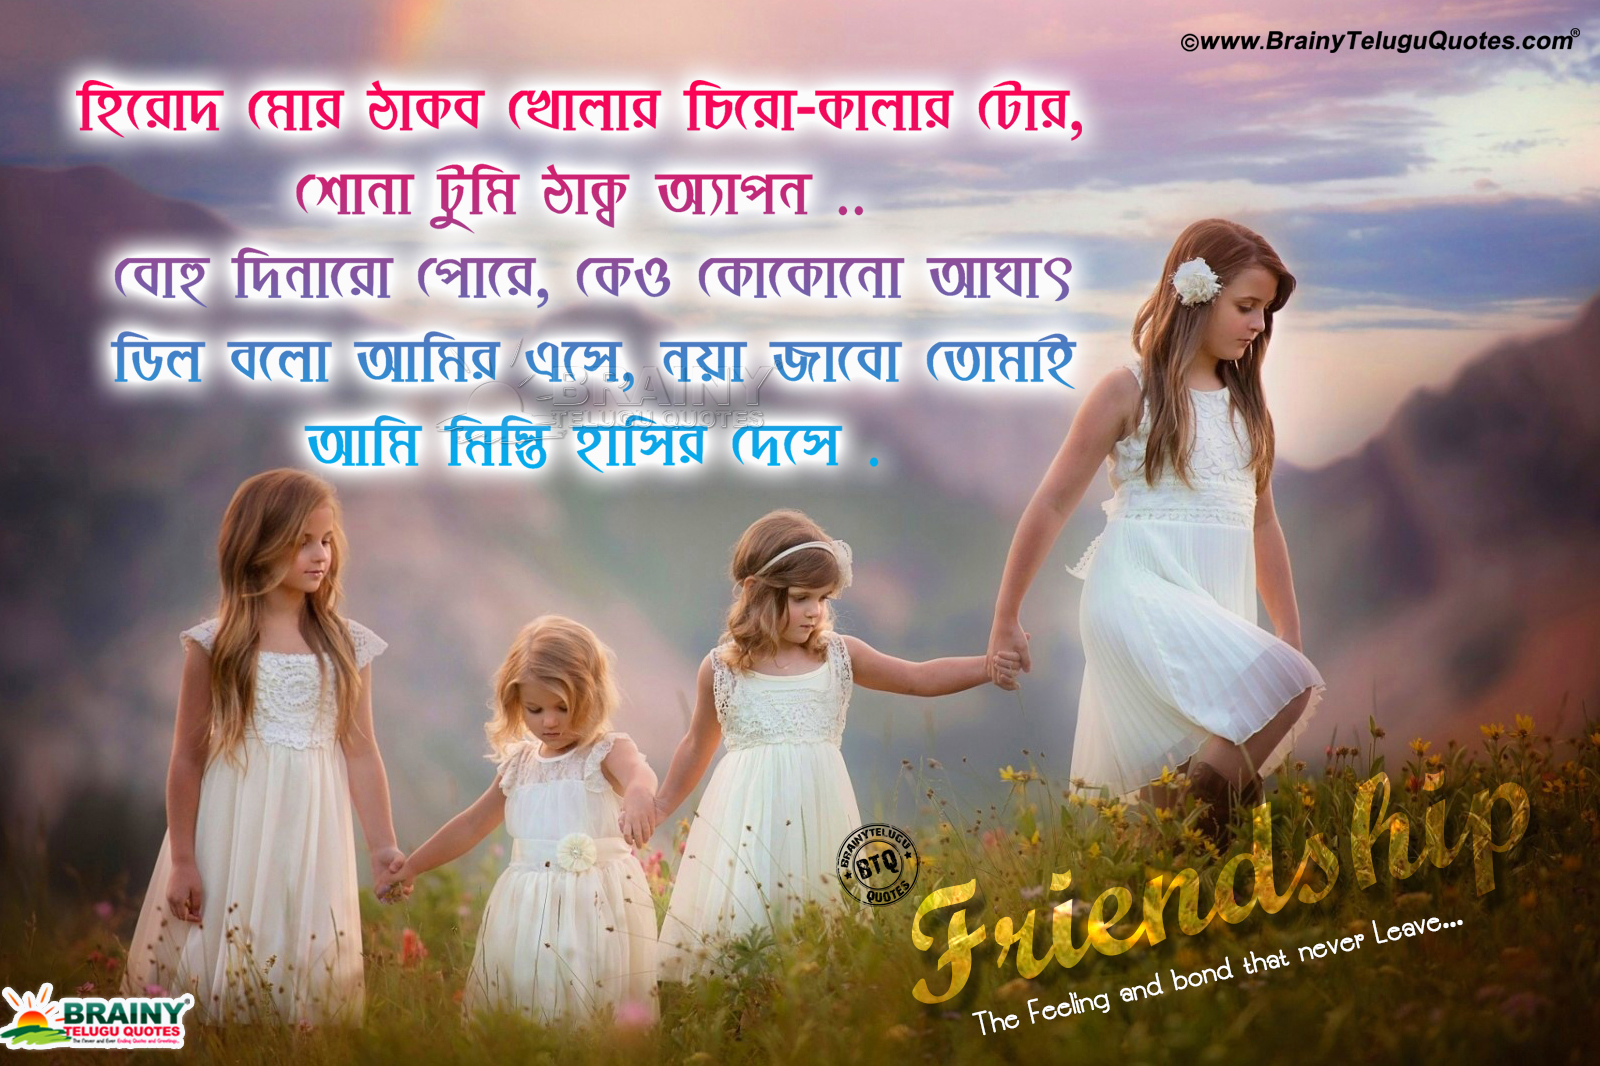 Bengali Heart Touching Quotes: Bengali Friendship Quotes In Bengali Font-Whats App